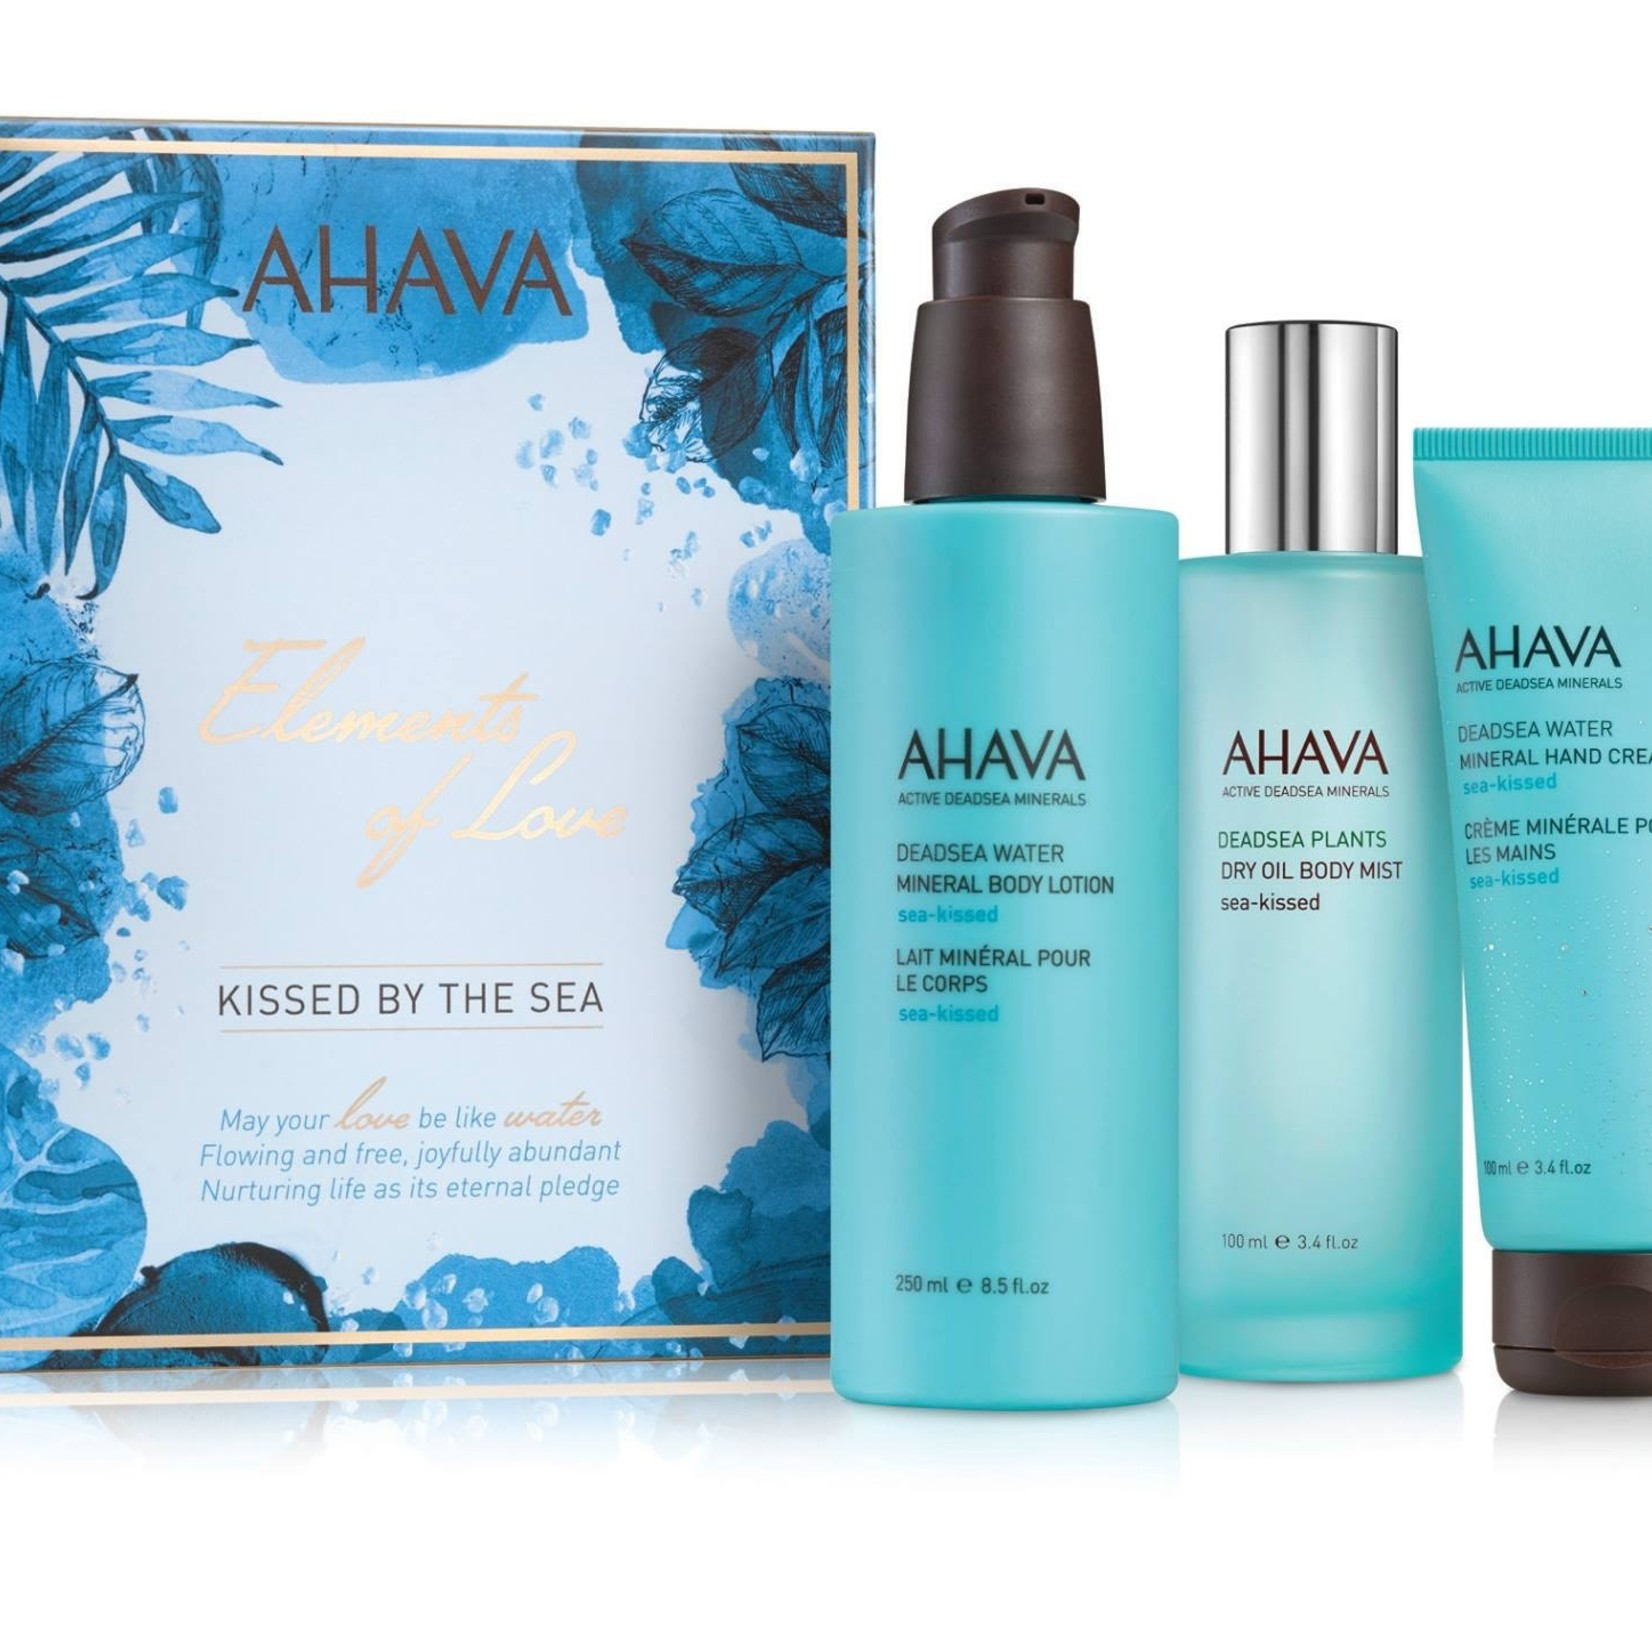 AHAVA Kissed by the sea holiday 2017